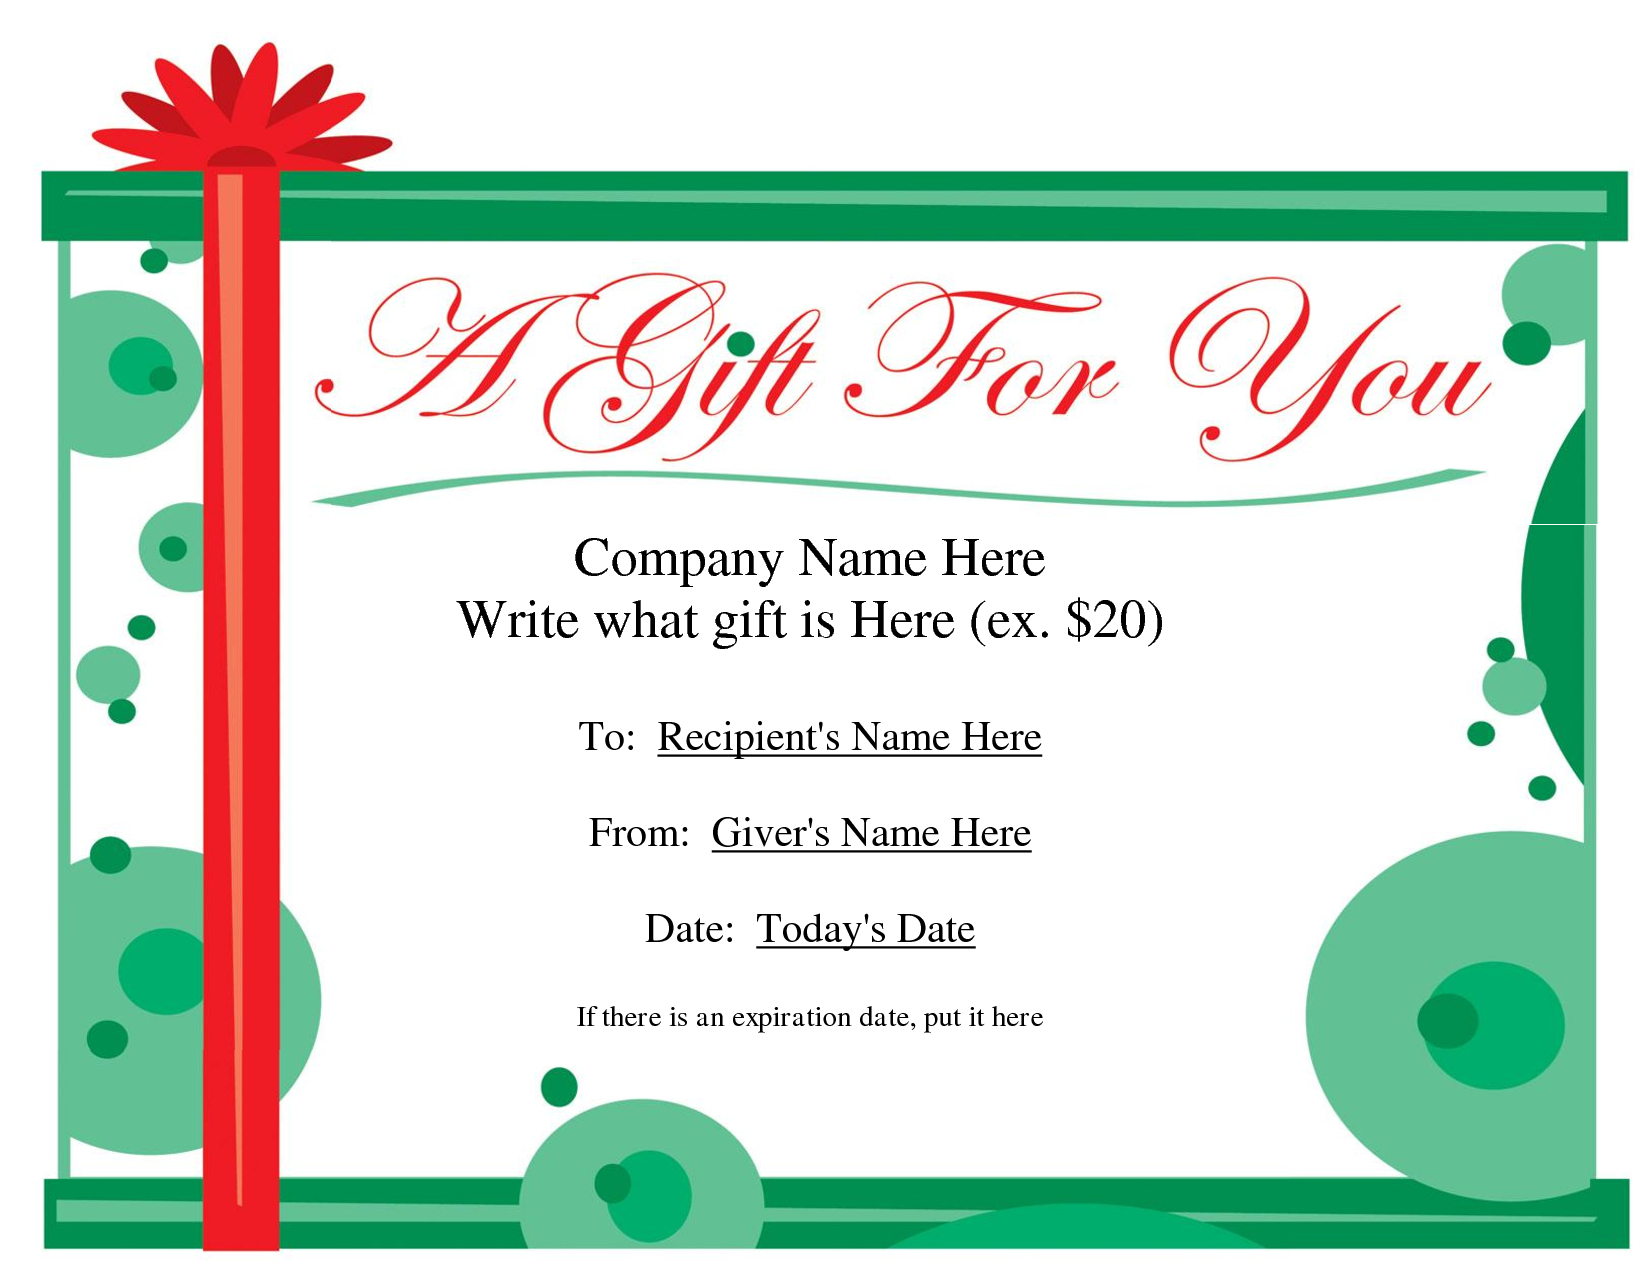 Free Christmas Gift Certificate Templates   Ideas For The House - Free Printable Christmas Gift Voucher Templates